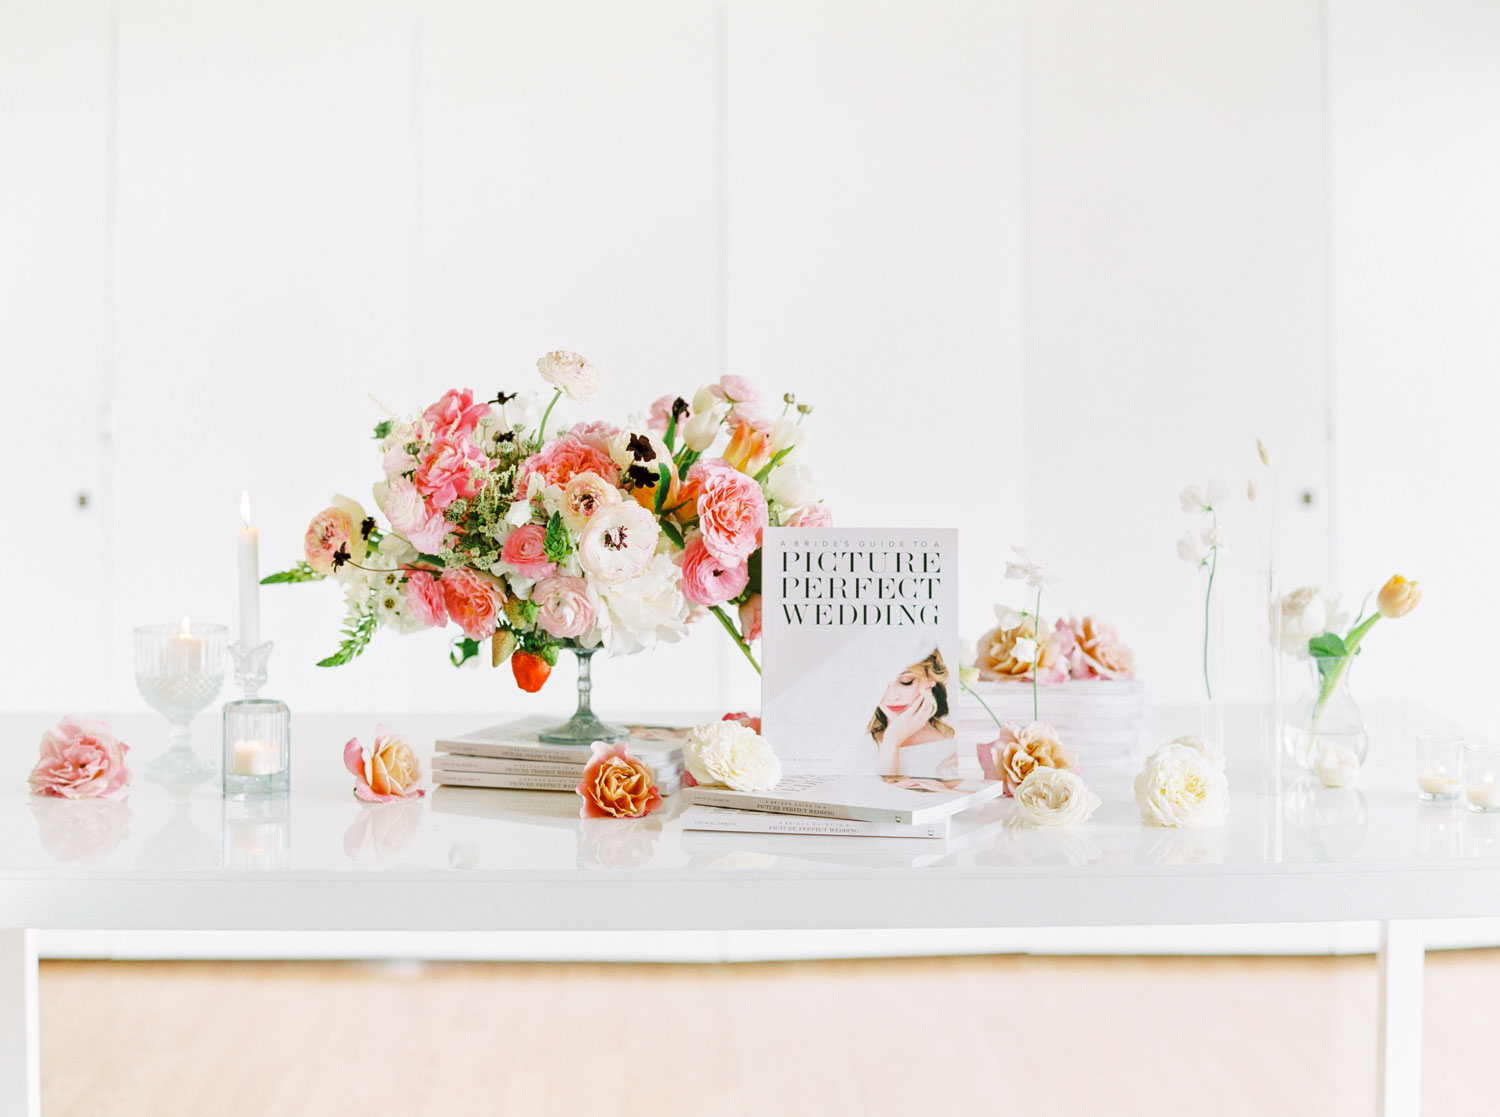 Wedding book for brides and grooms, White table with Pink green white peach centerpiece on film, Romantic Colorful Floral Arrangements by Organic Flora, Cavin Elizabeth Photography